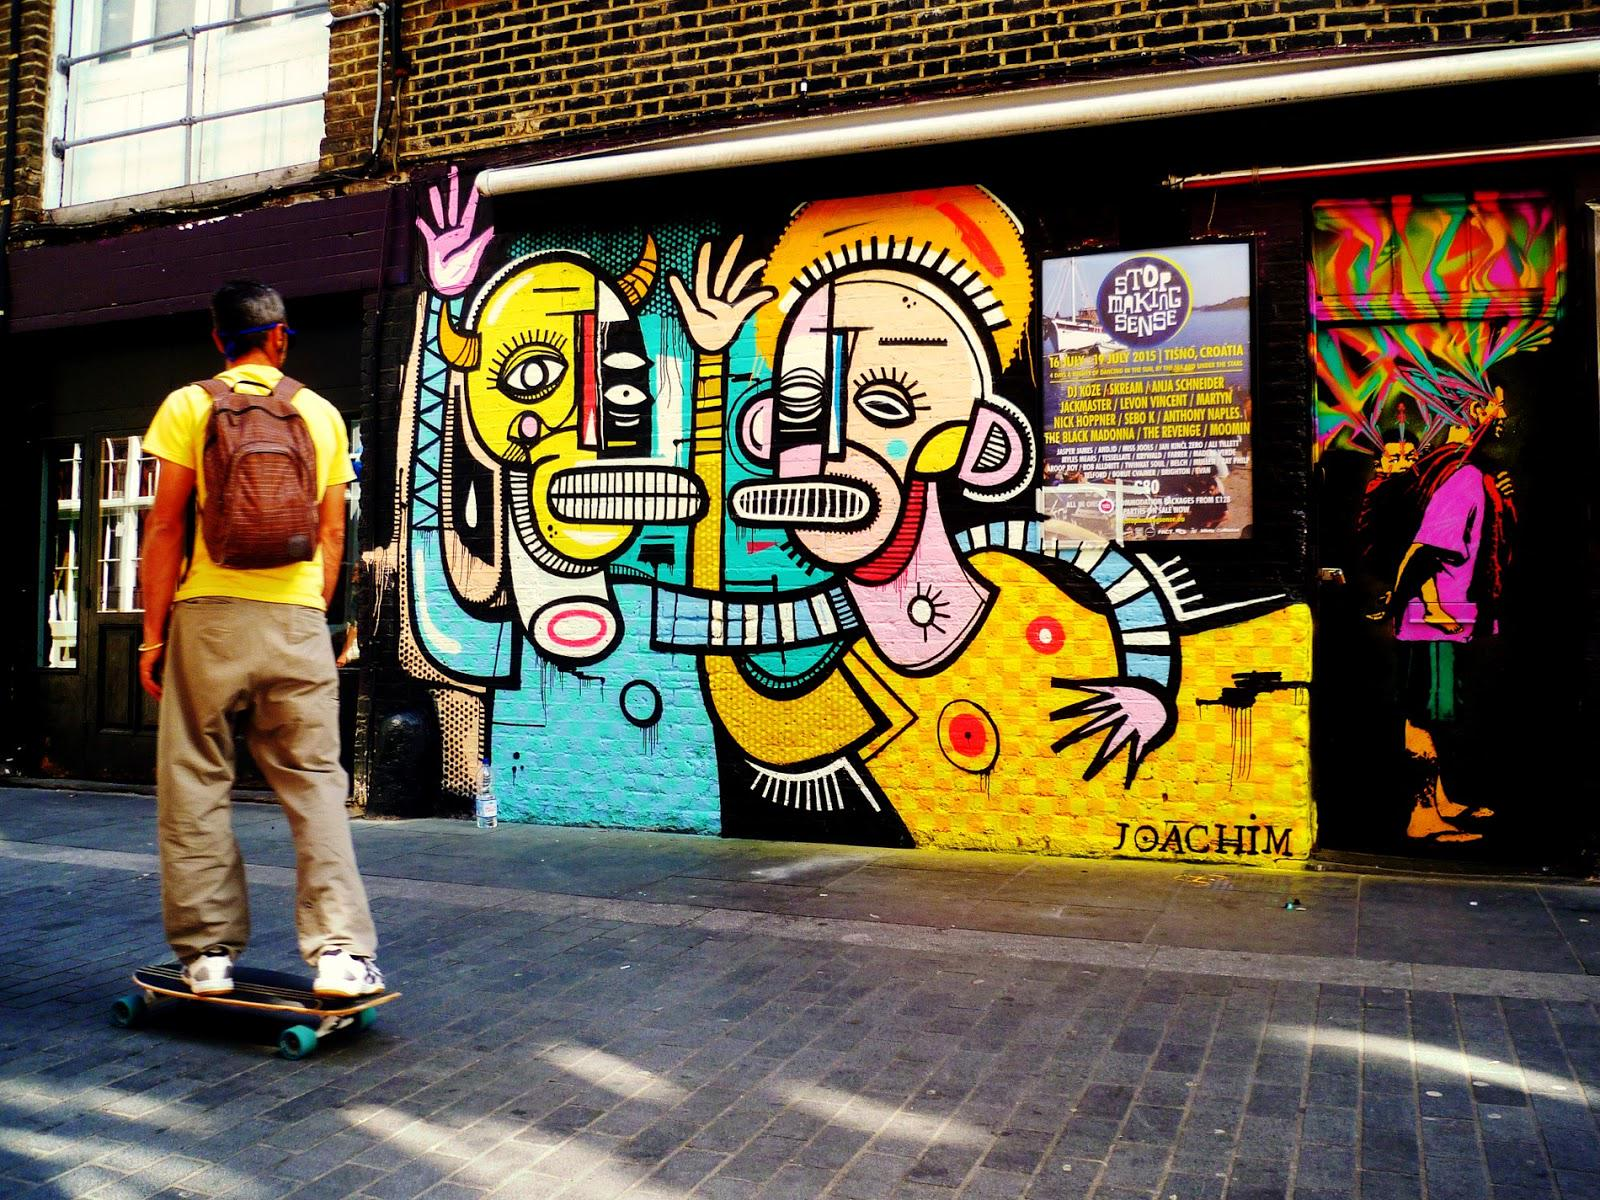 Joachim's incredible new piece in East London, UK. http://t.co/z6R0nflr8M